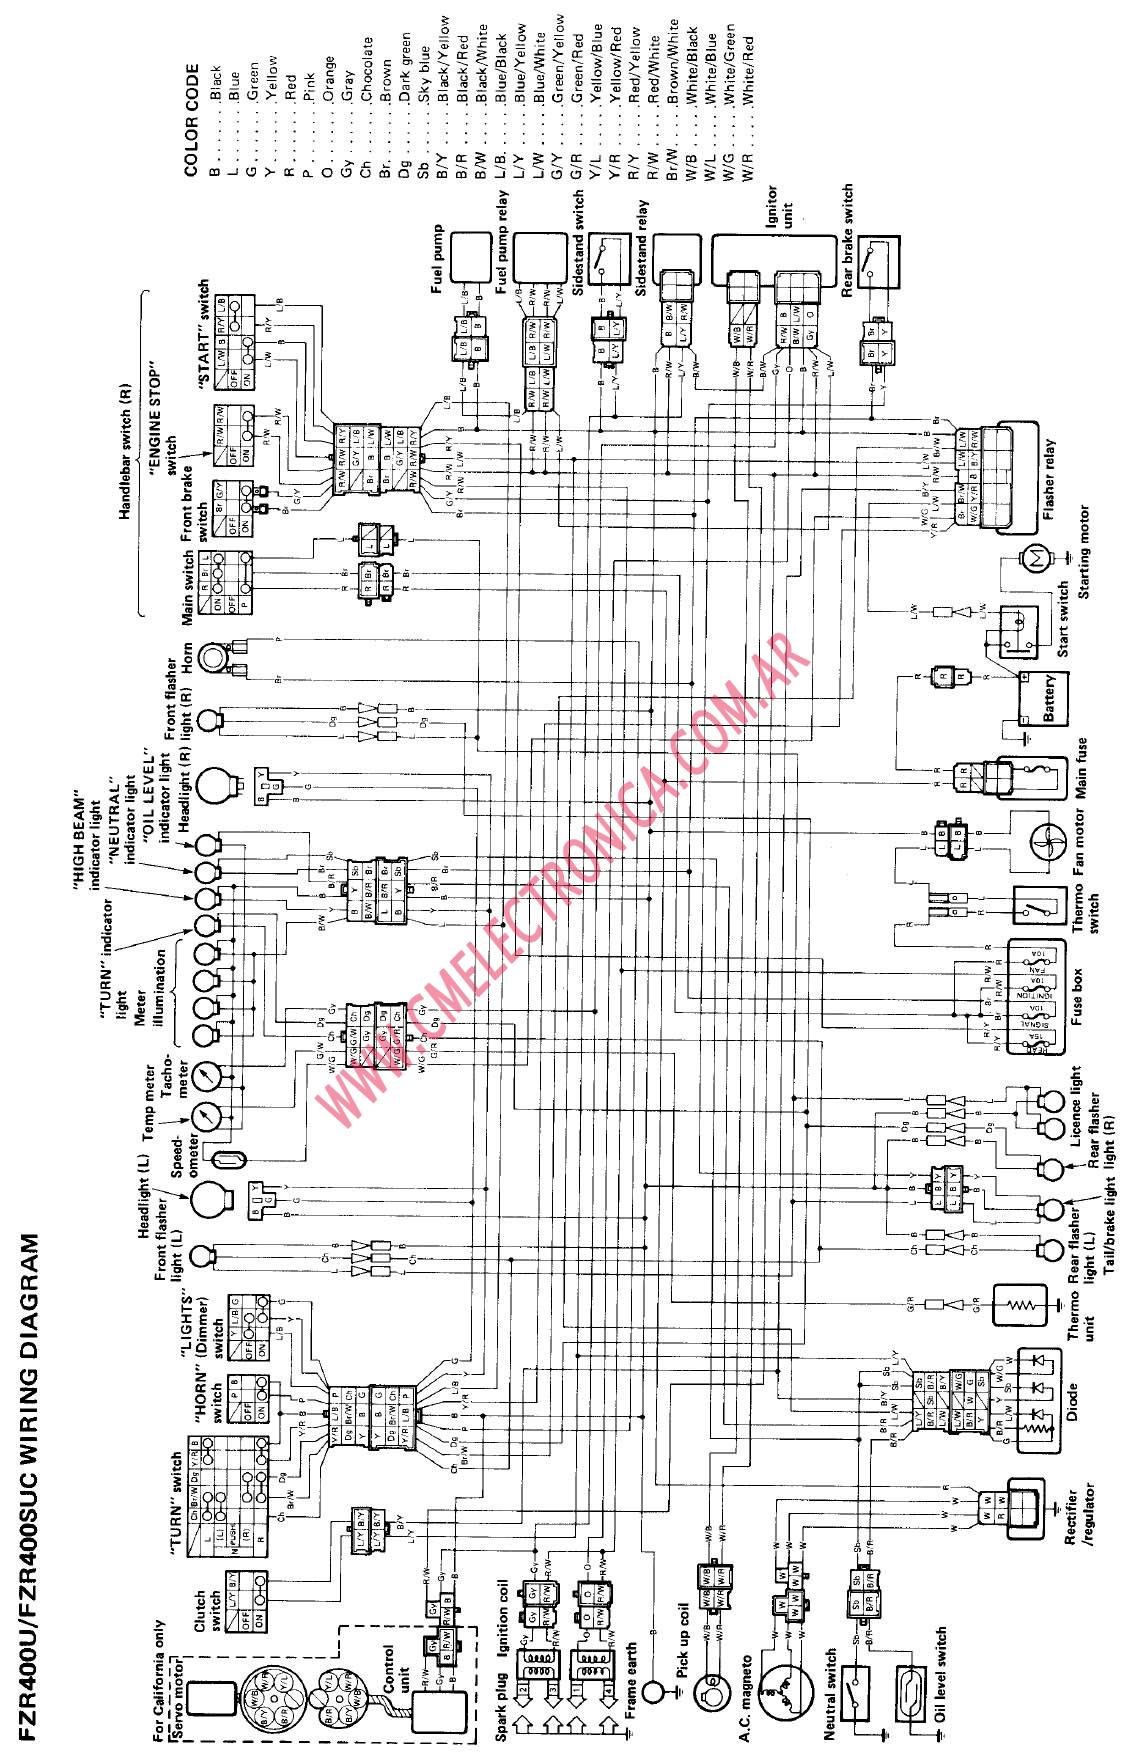 suzuki gn400 wiring diagrams suzuki gs450 wiring diagram